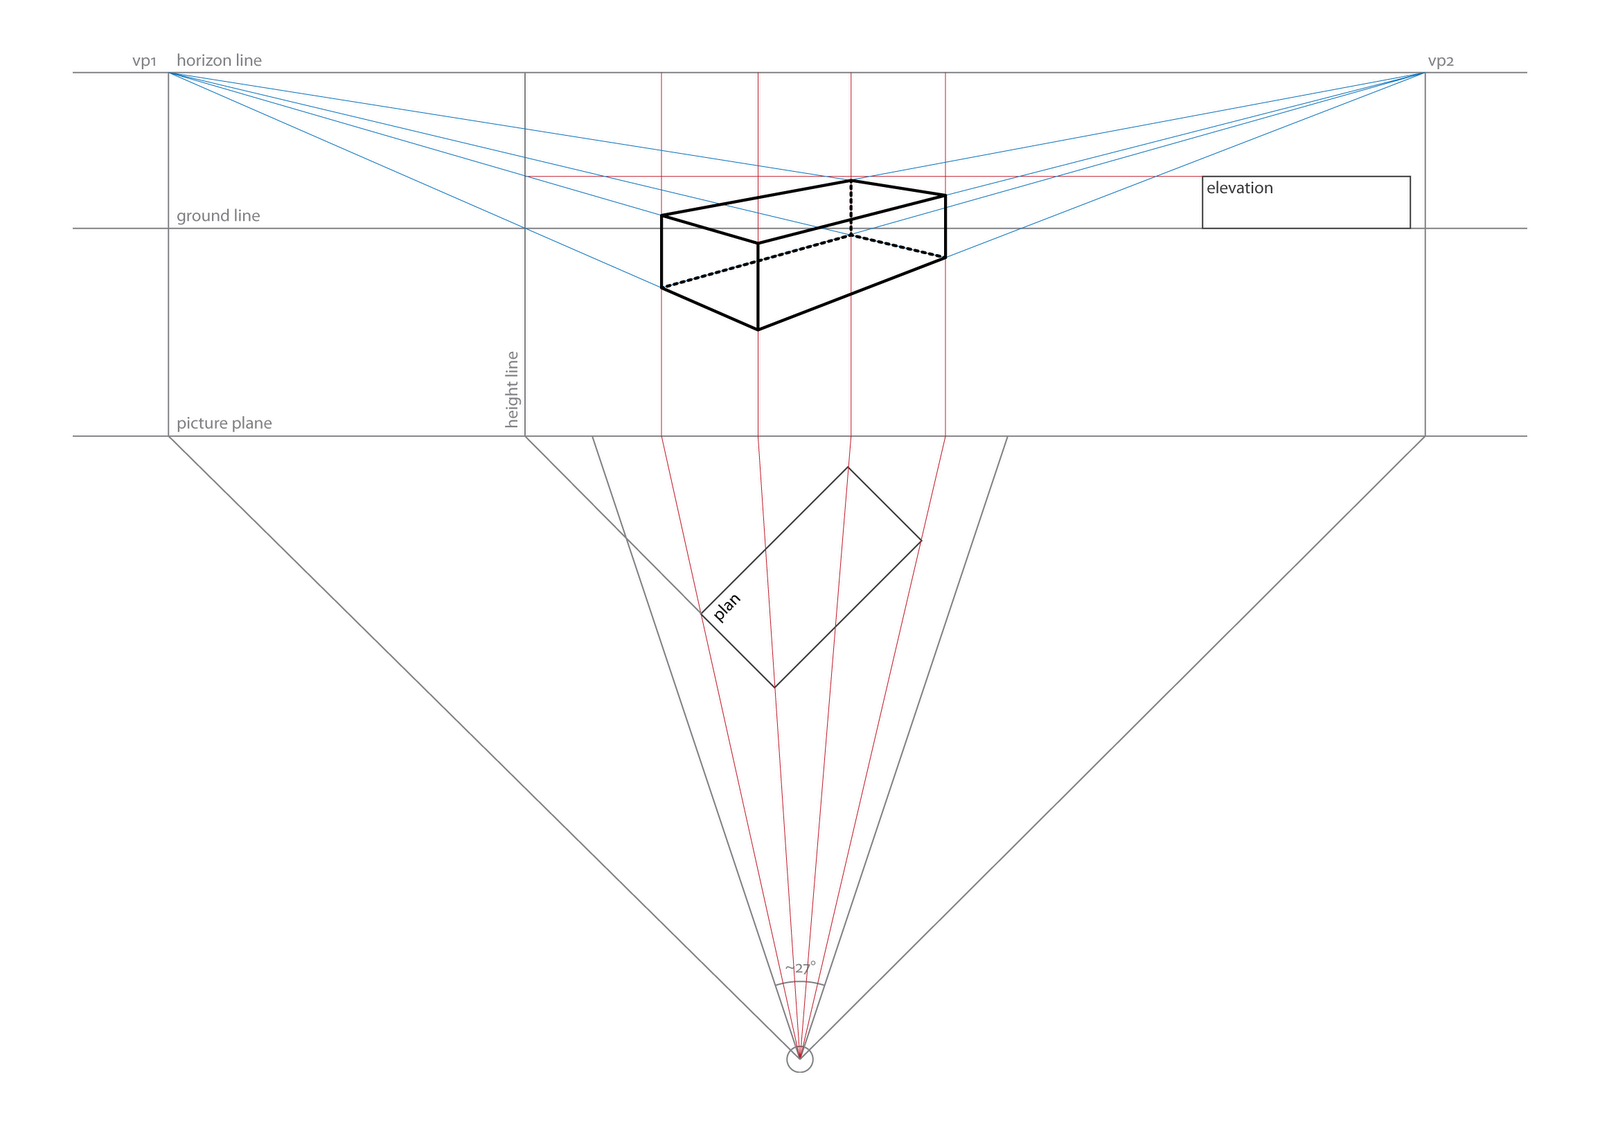 Plan Elevation Perspective : Alltheworstideas construction of a rectangular prism from